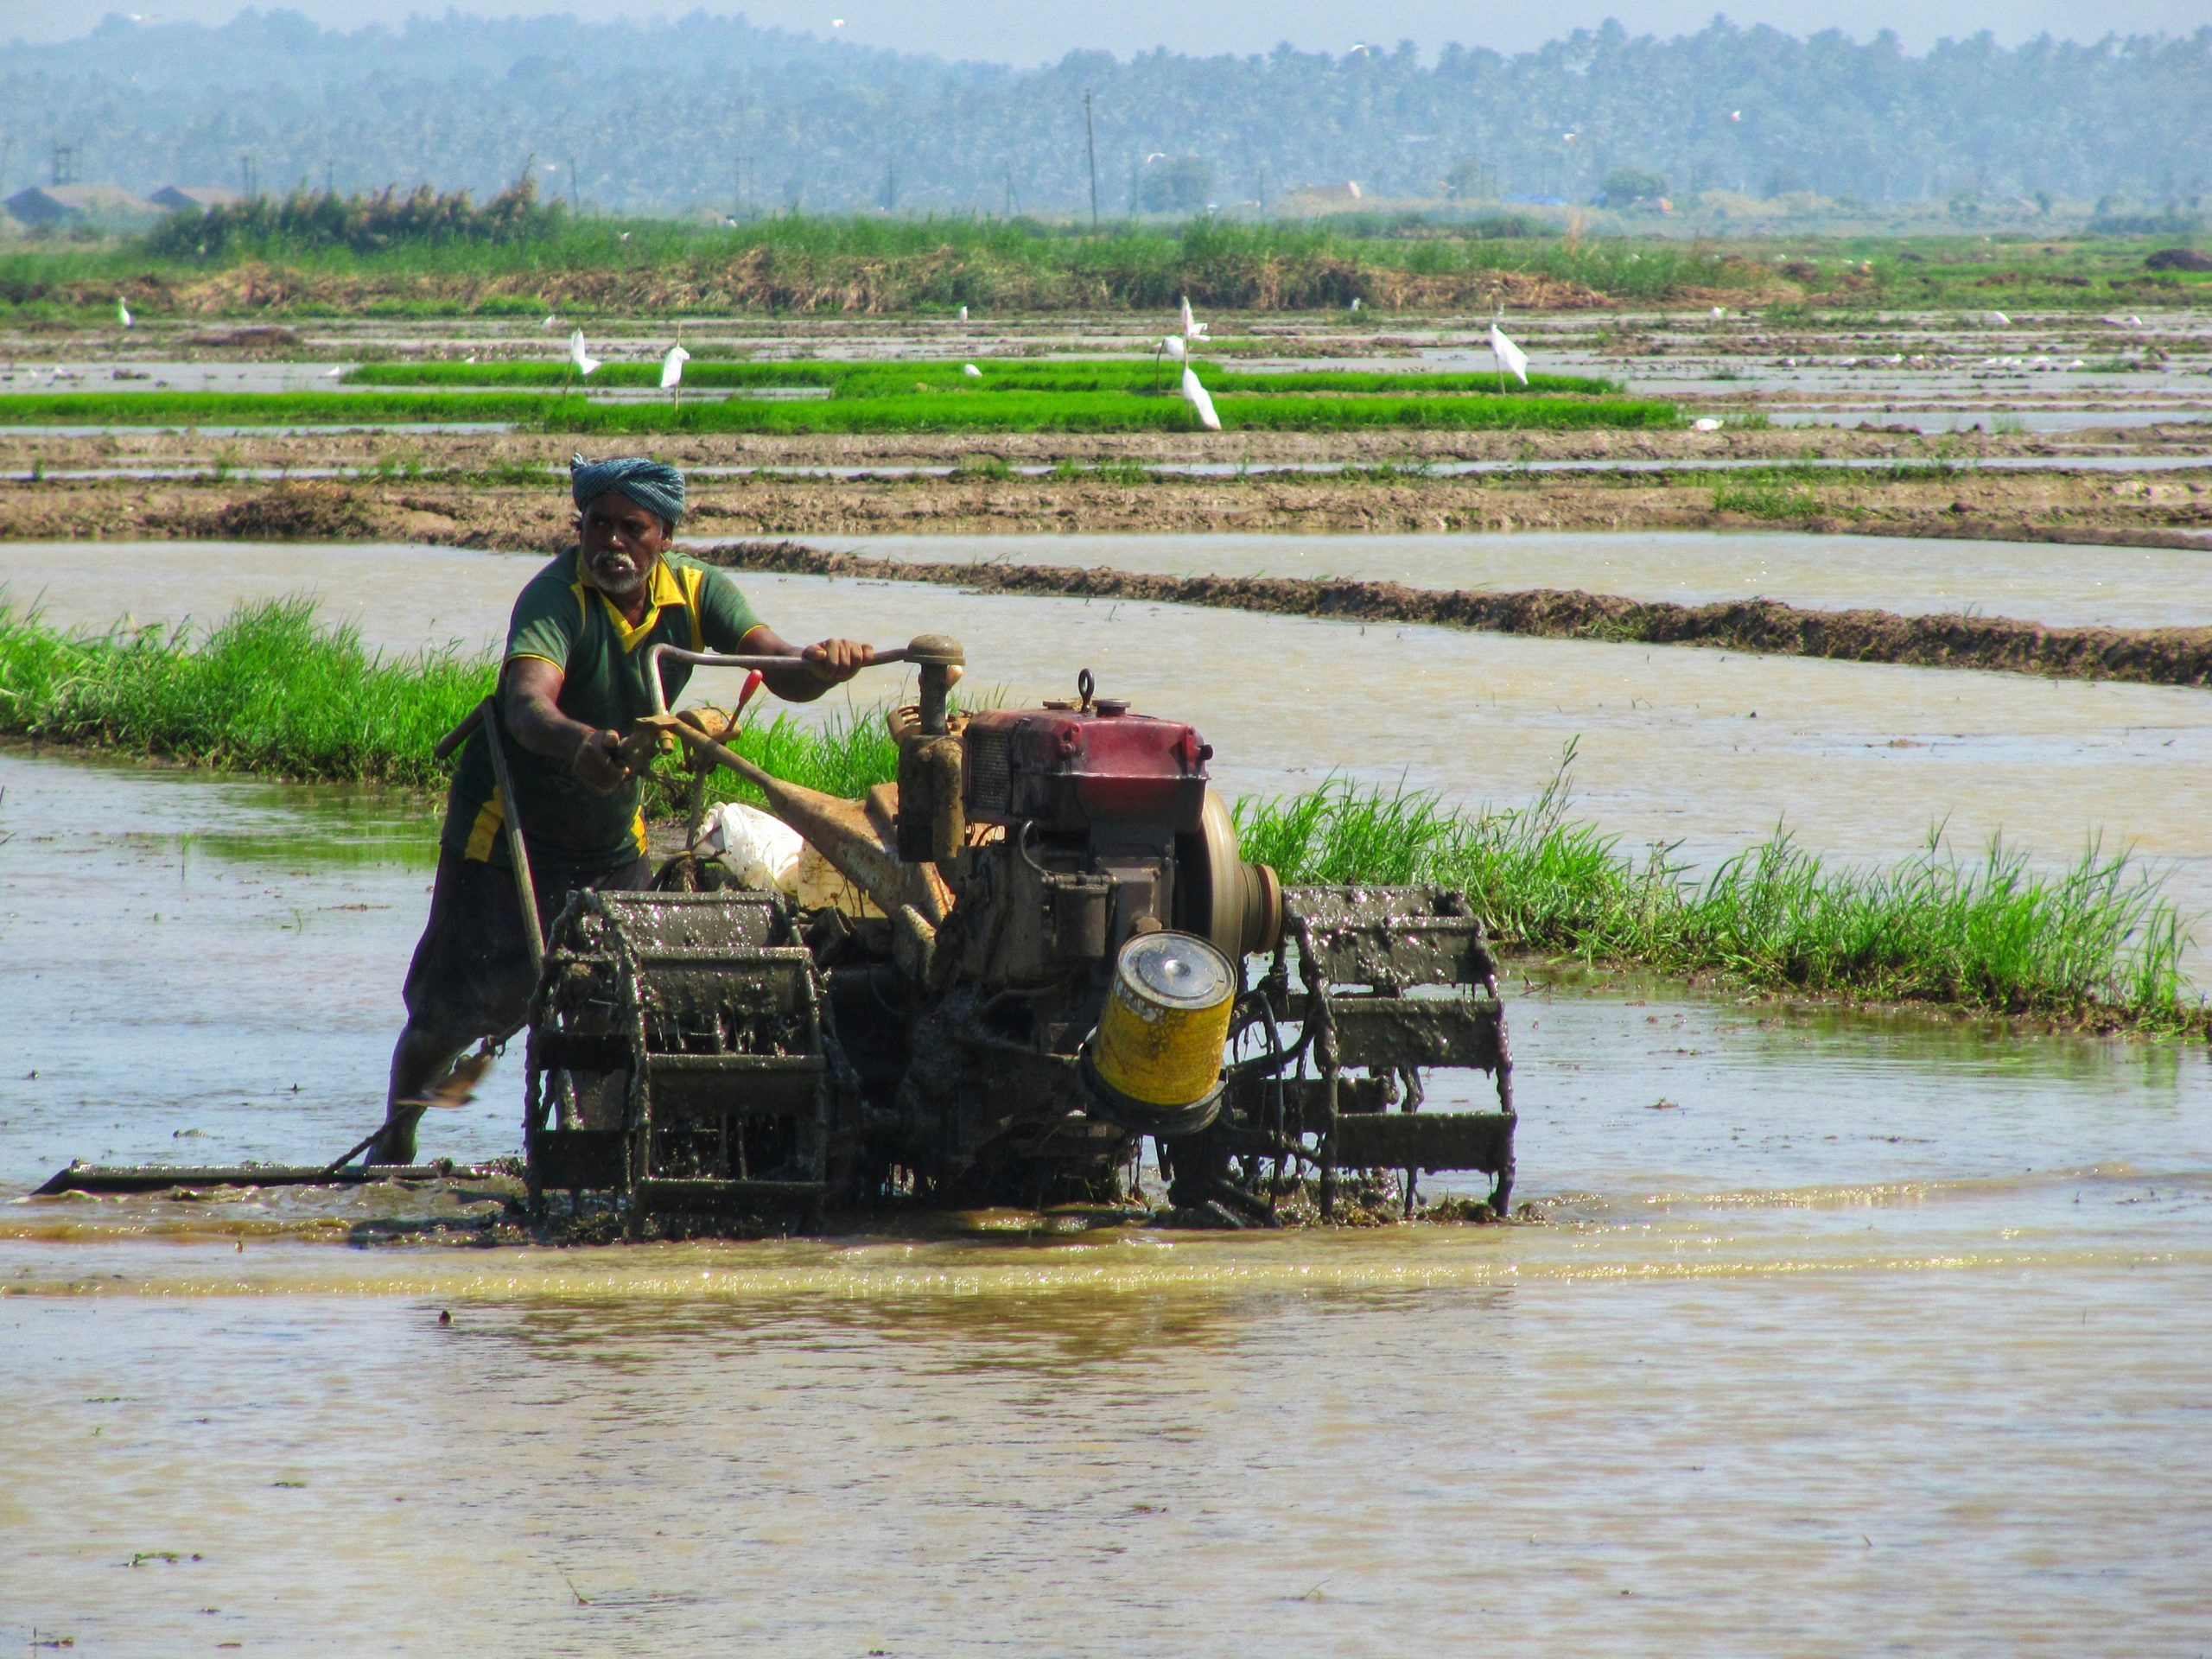 A farmer with a machine in his field